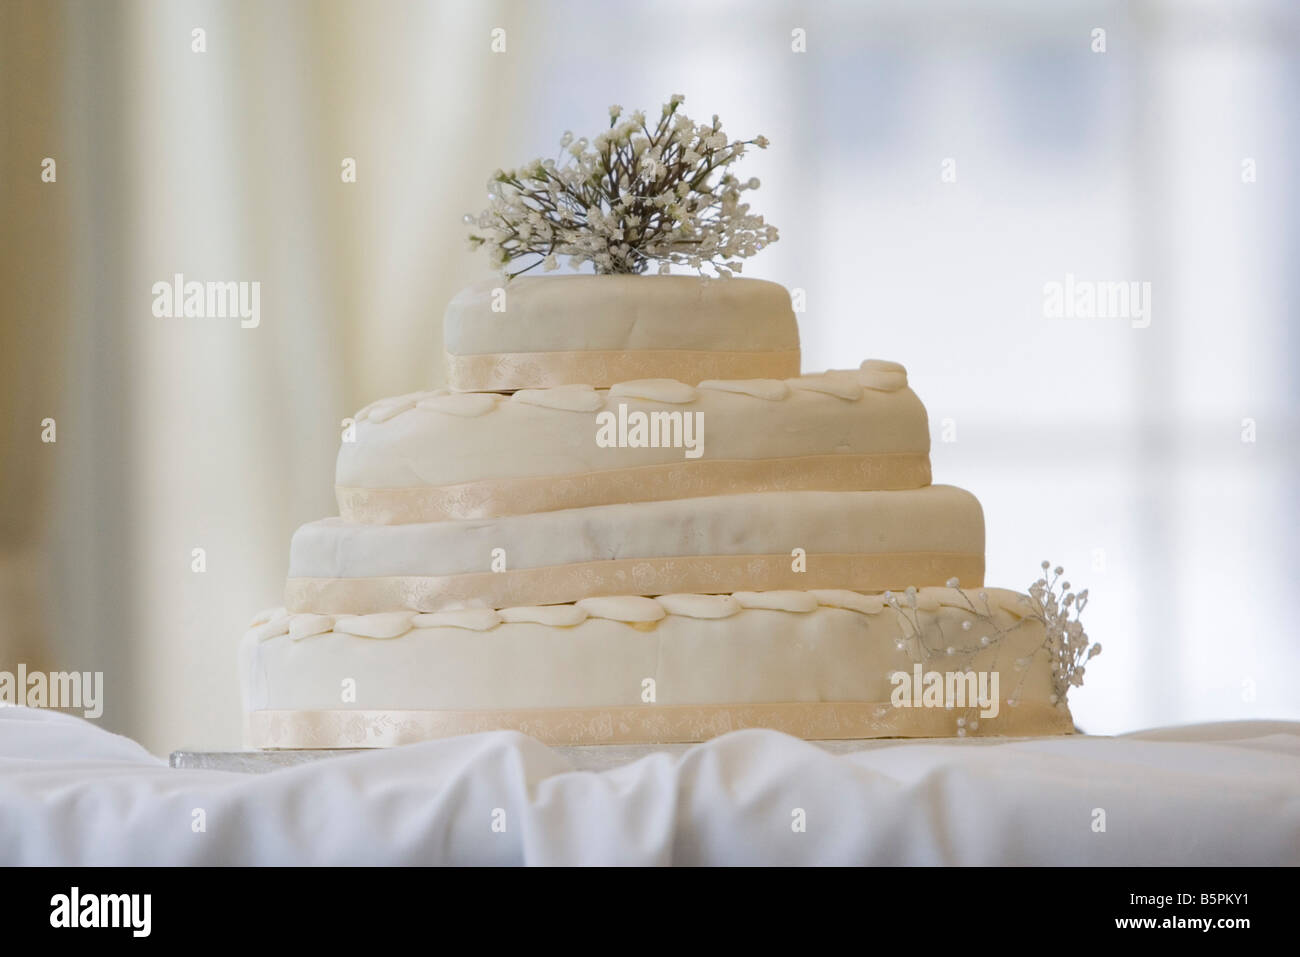 Wedge Of Cake Stock Photos & Wedge Of Cake Stock Images - Alamy